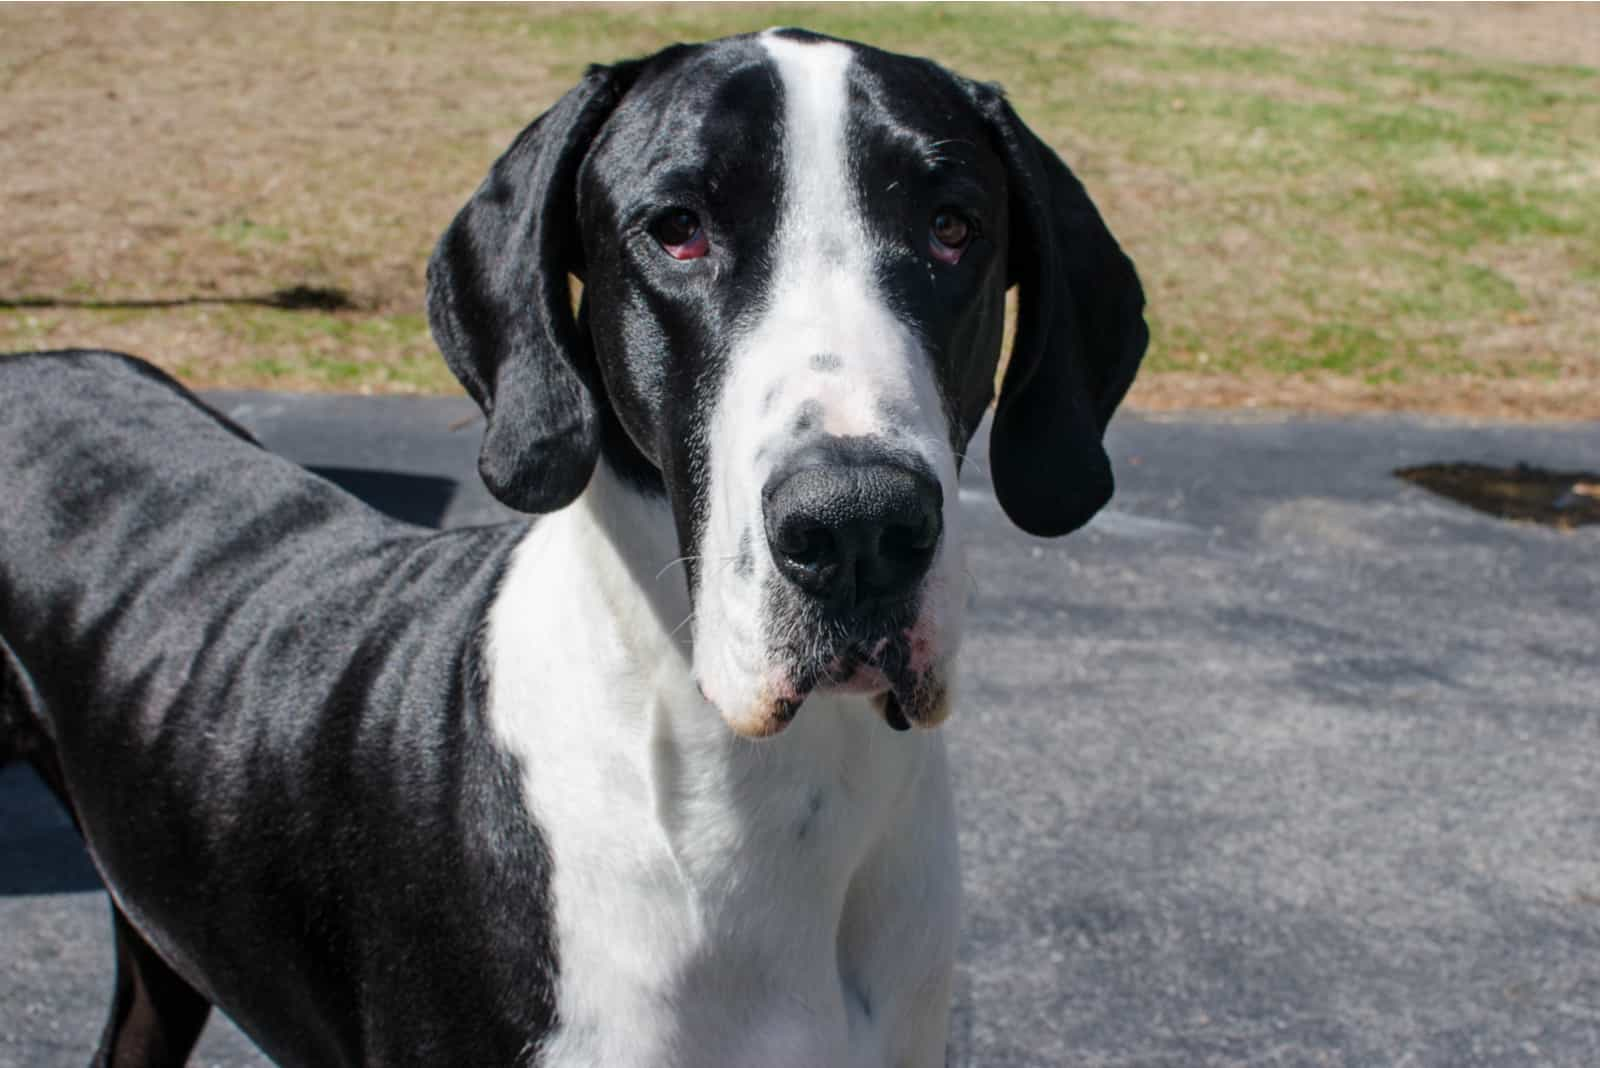 Black and white great dane standing